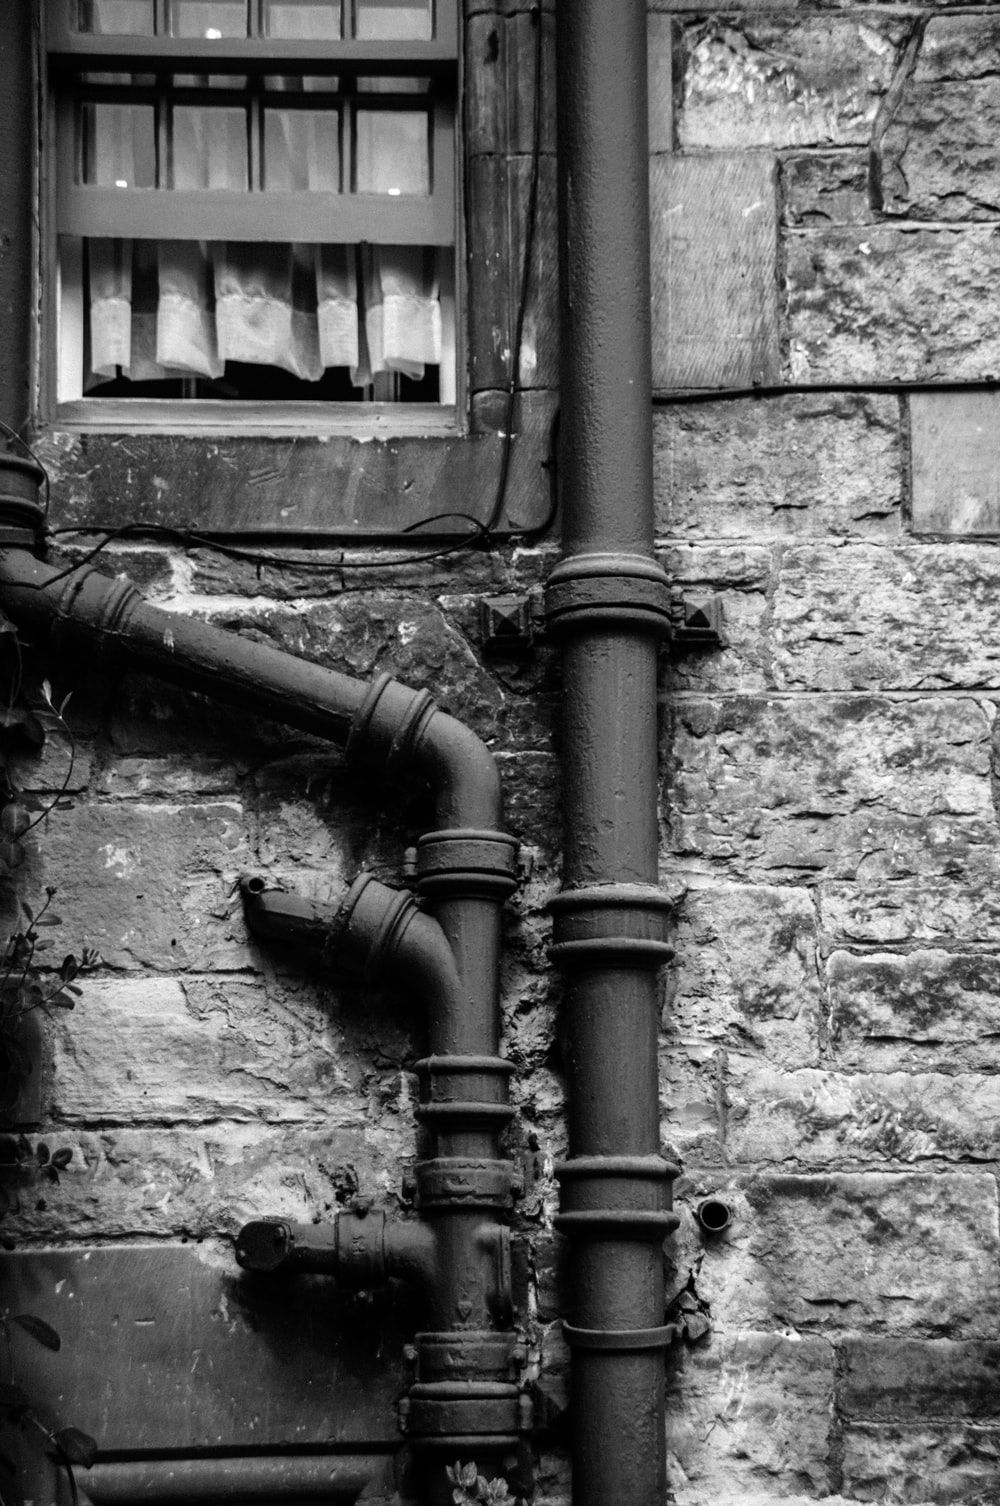 greyscale photography of pipe